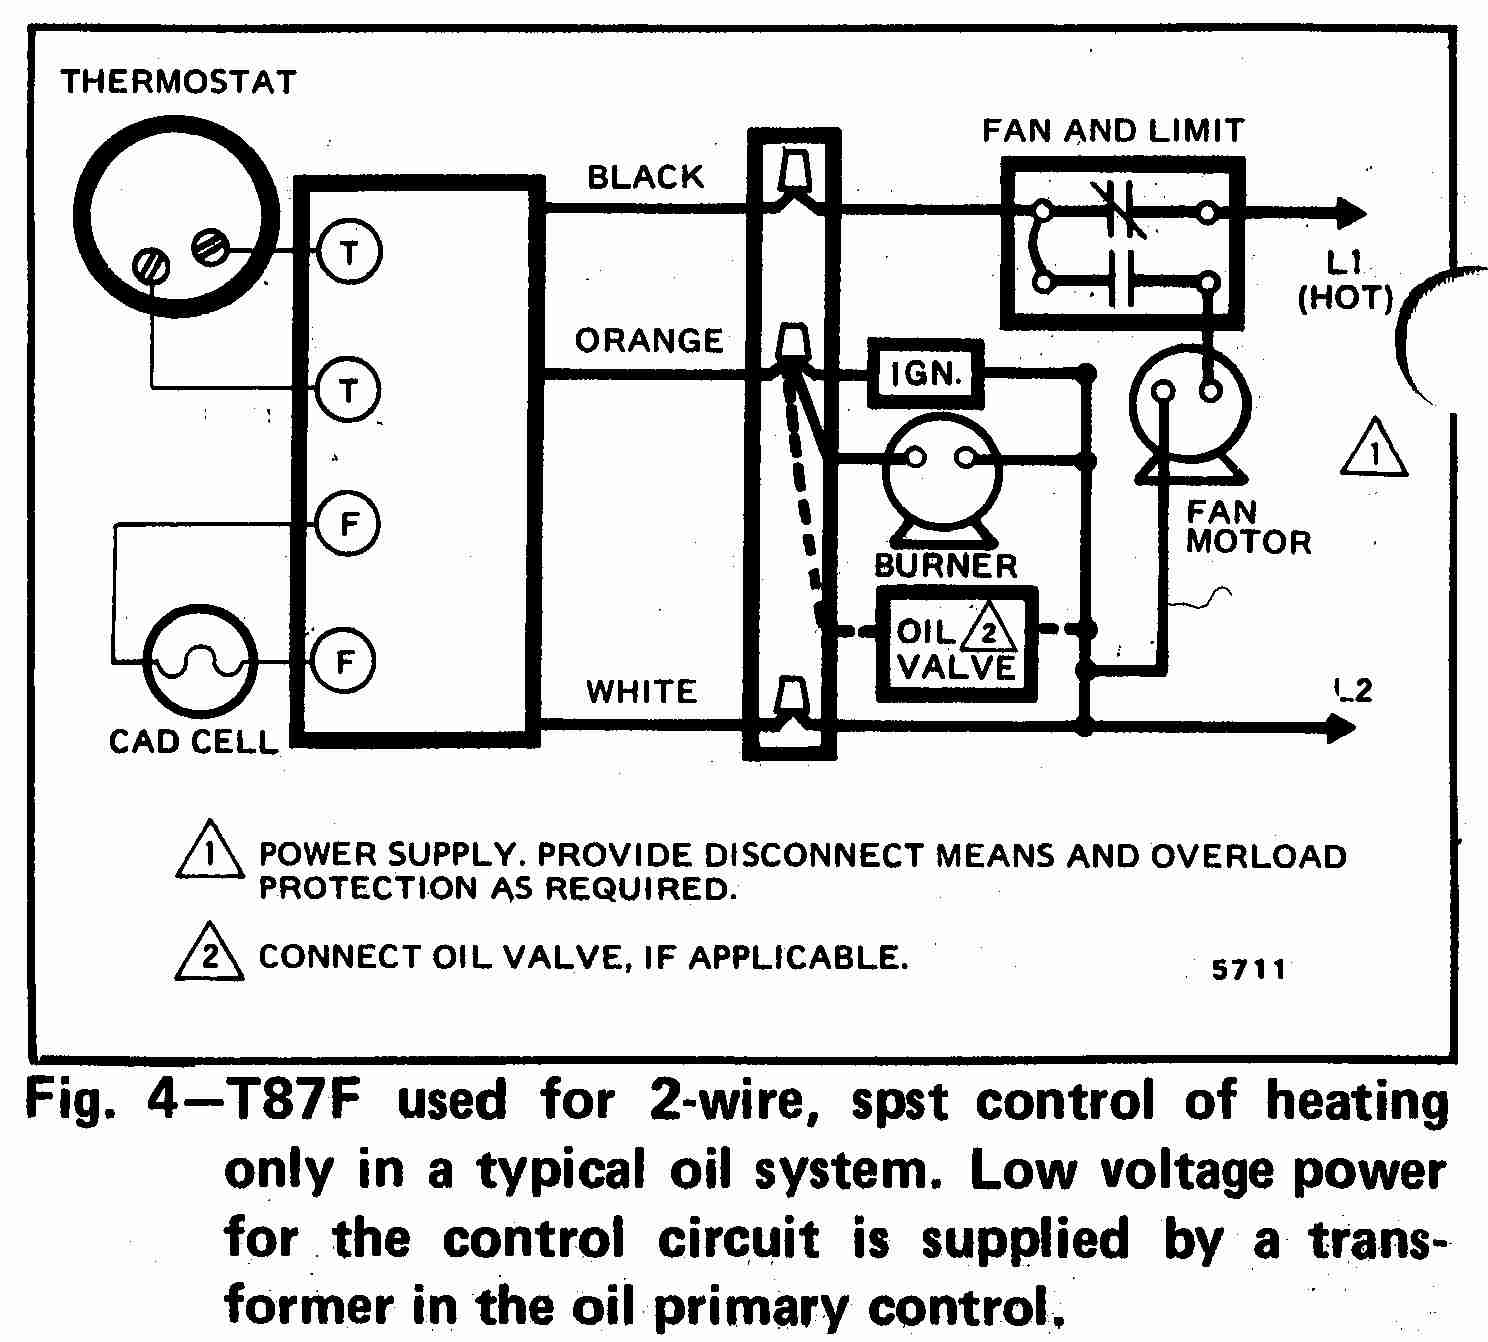 TT_T87F_0002_2W_DJF room thermostat wiring diagrams for hvac systems honeywell thermostat wiring diagram at gsmportal.co